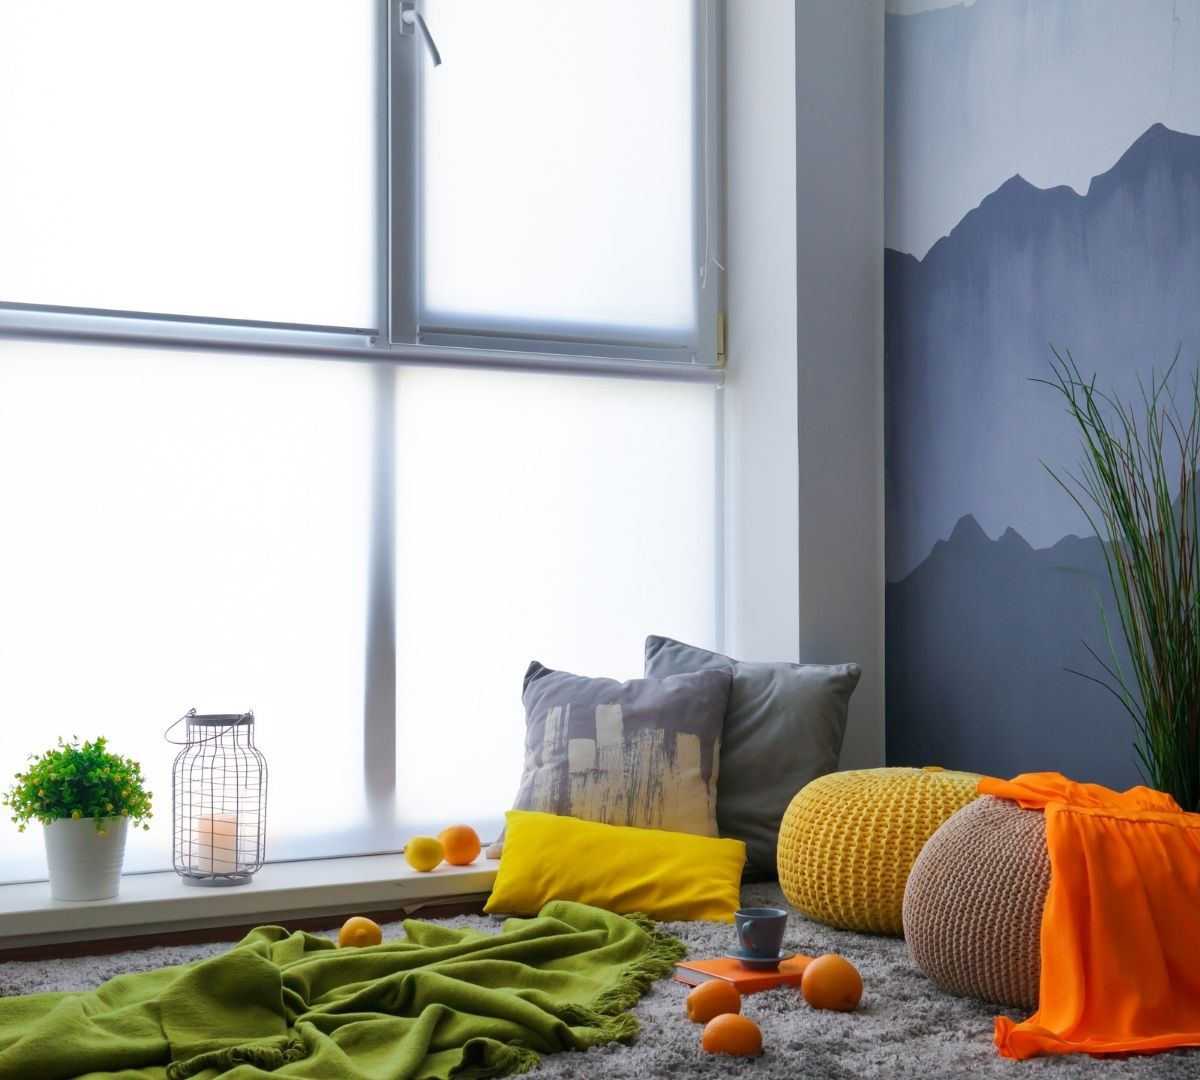 Space with a green blanket, pillows and oranges near a window.